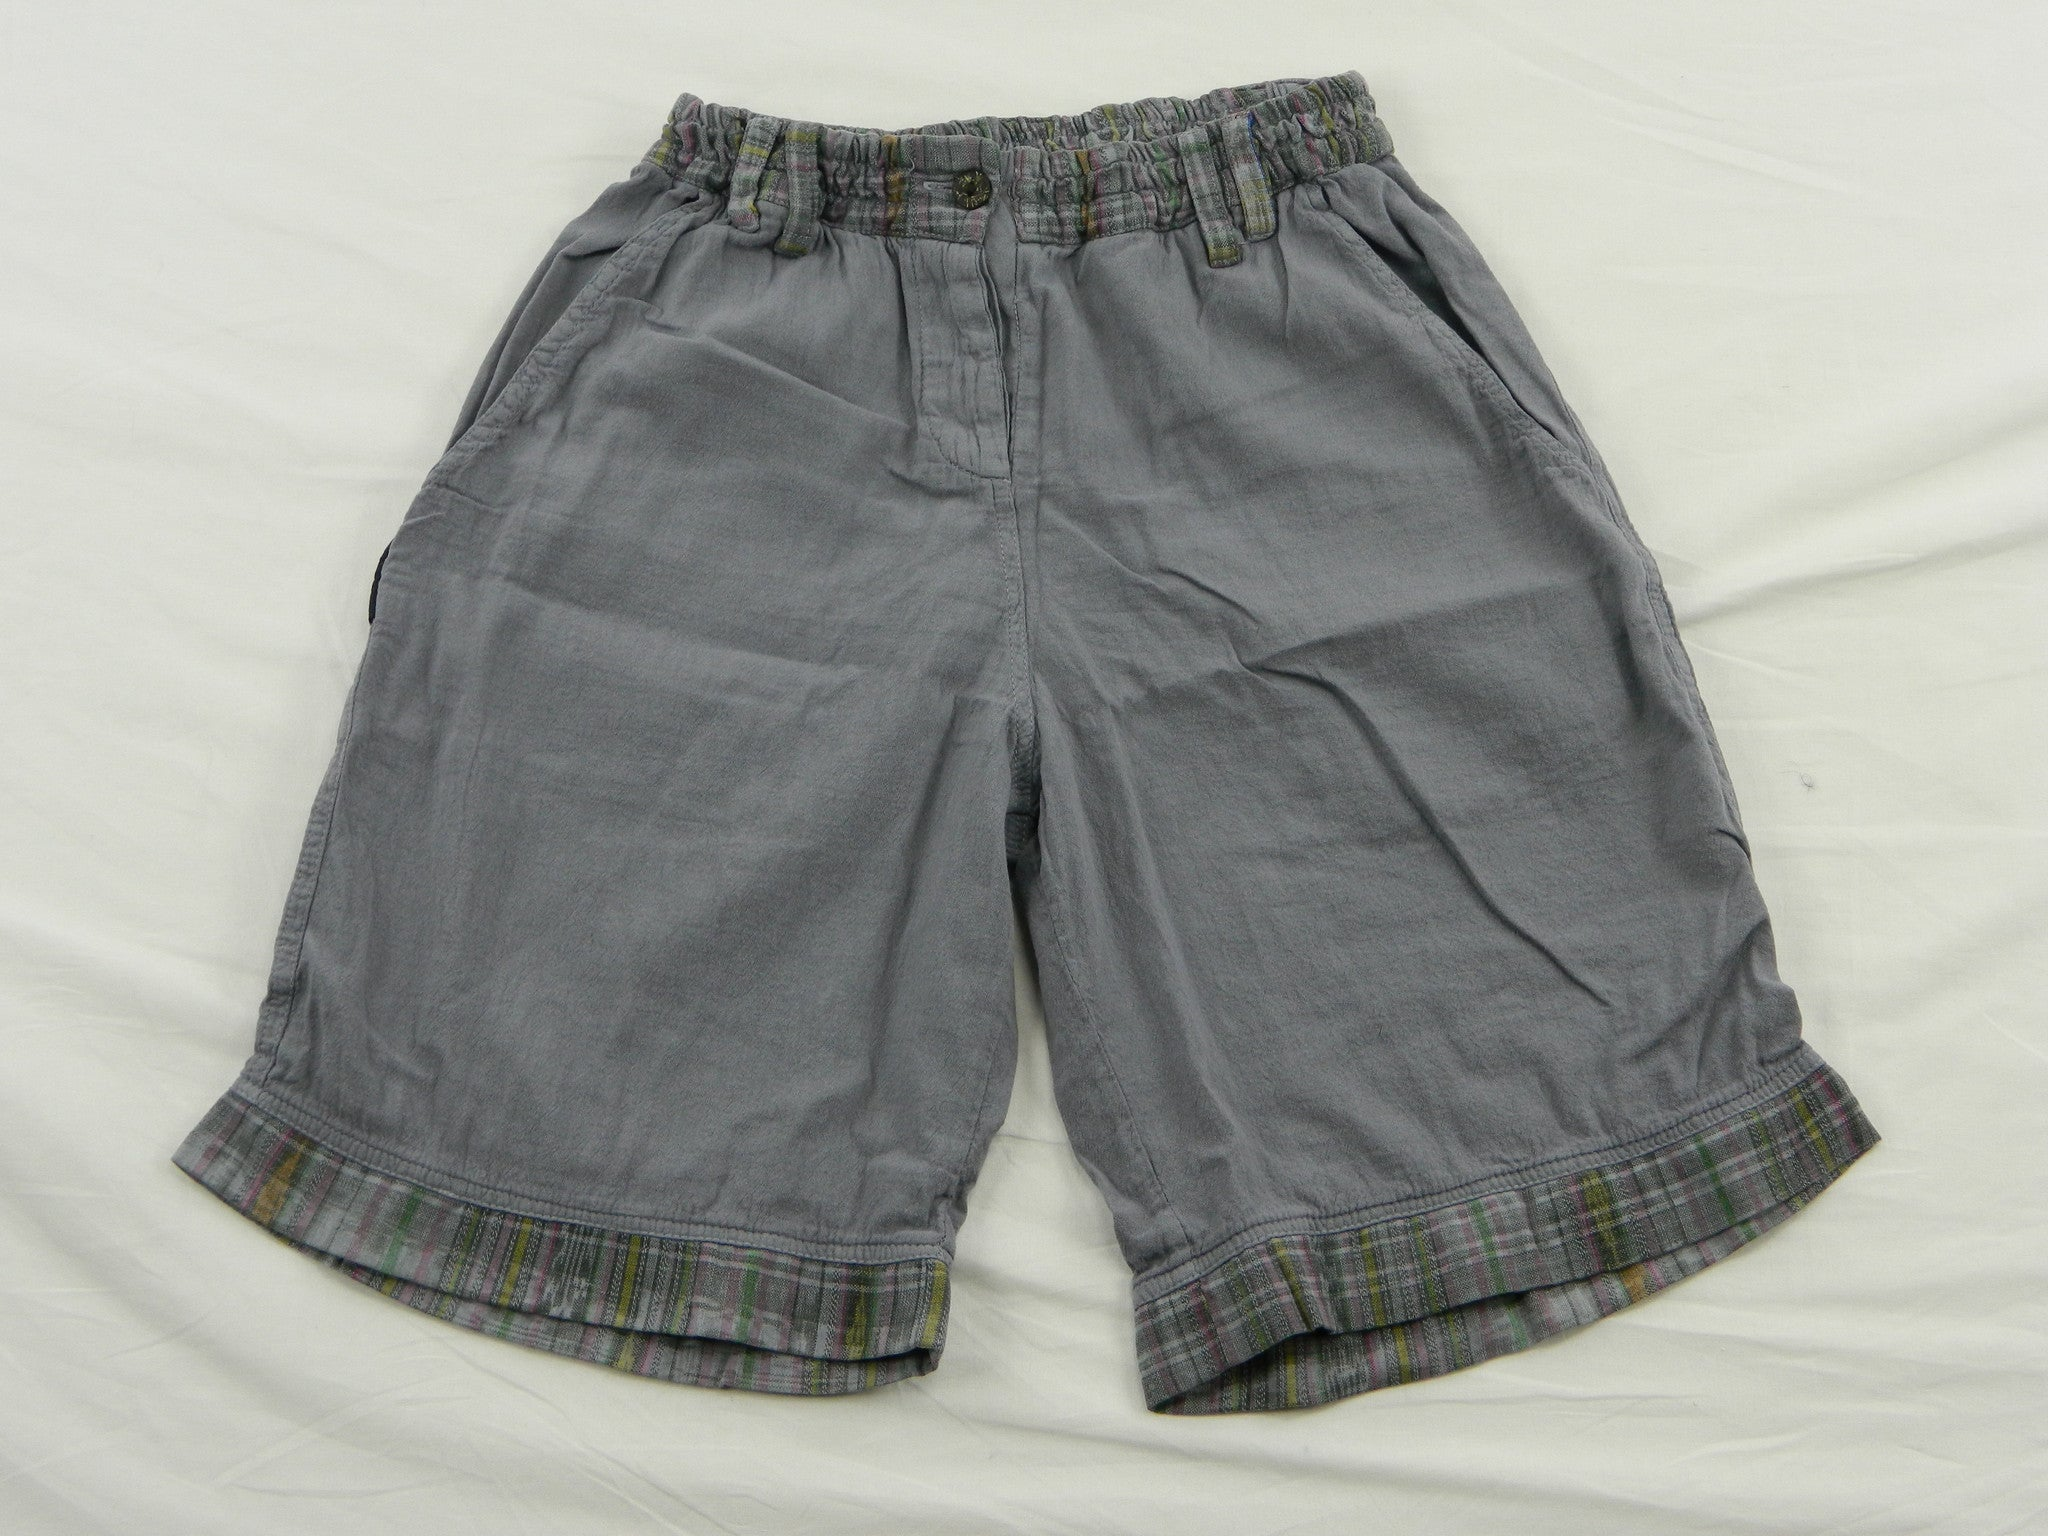 Women's shorts in garment dyed cotton with woven trim